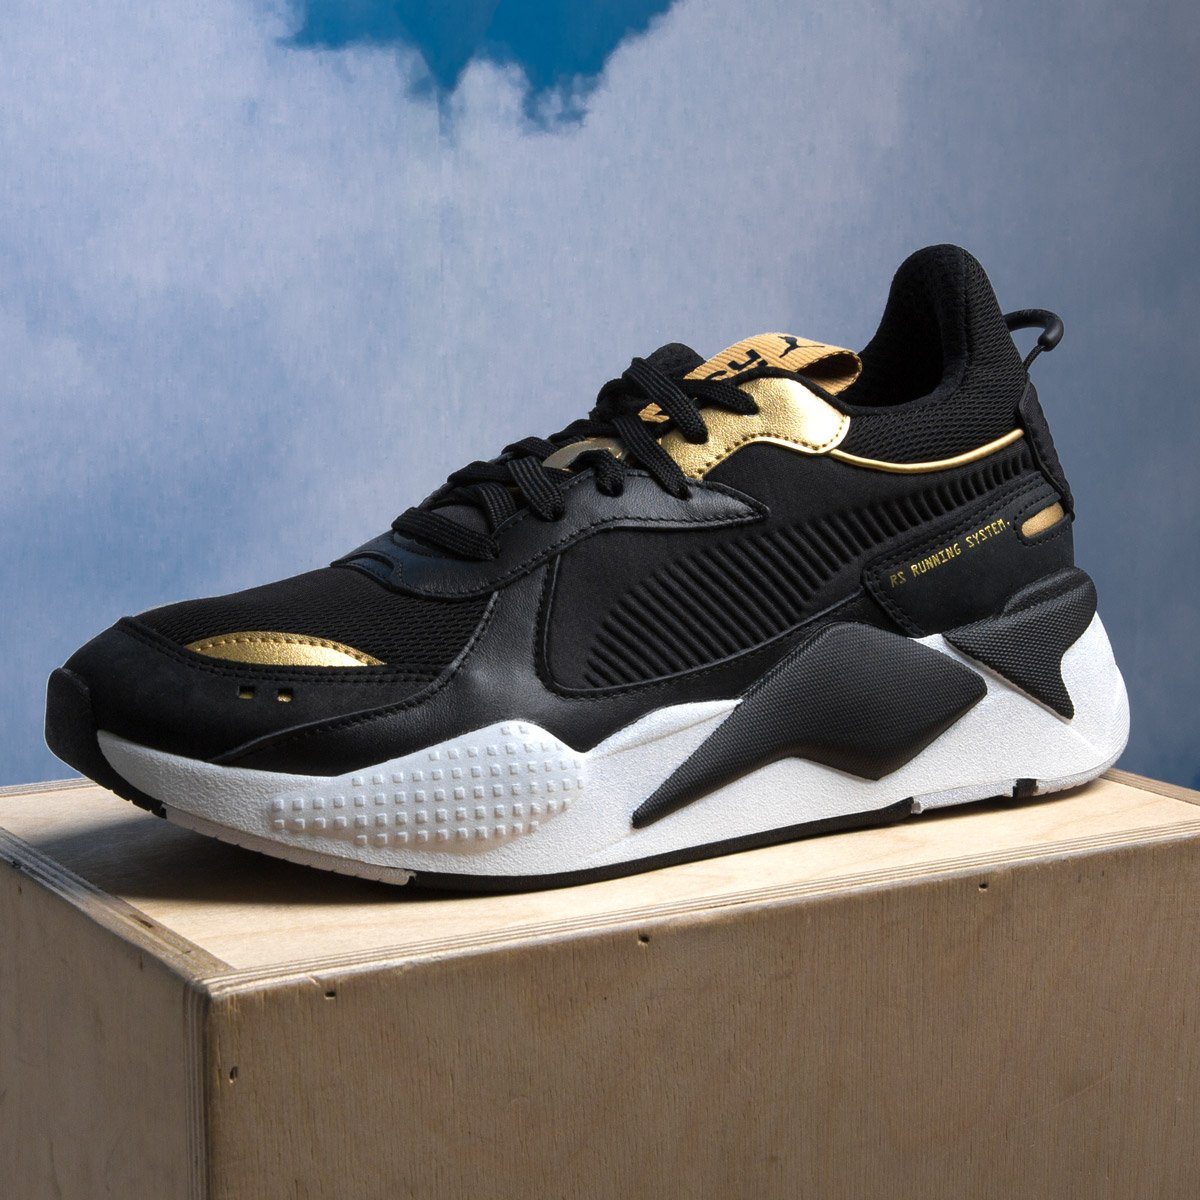 Trophies   PUMA RS-X Now Available Online and In Stores  black  gold  rsx  http   ow.ly JiNp30nzv1U pic.twitter.com 35phg9T0X5 739dddd1a